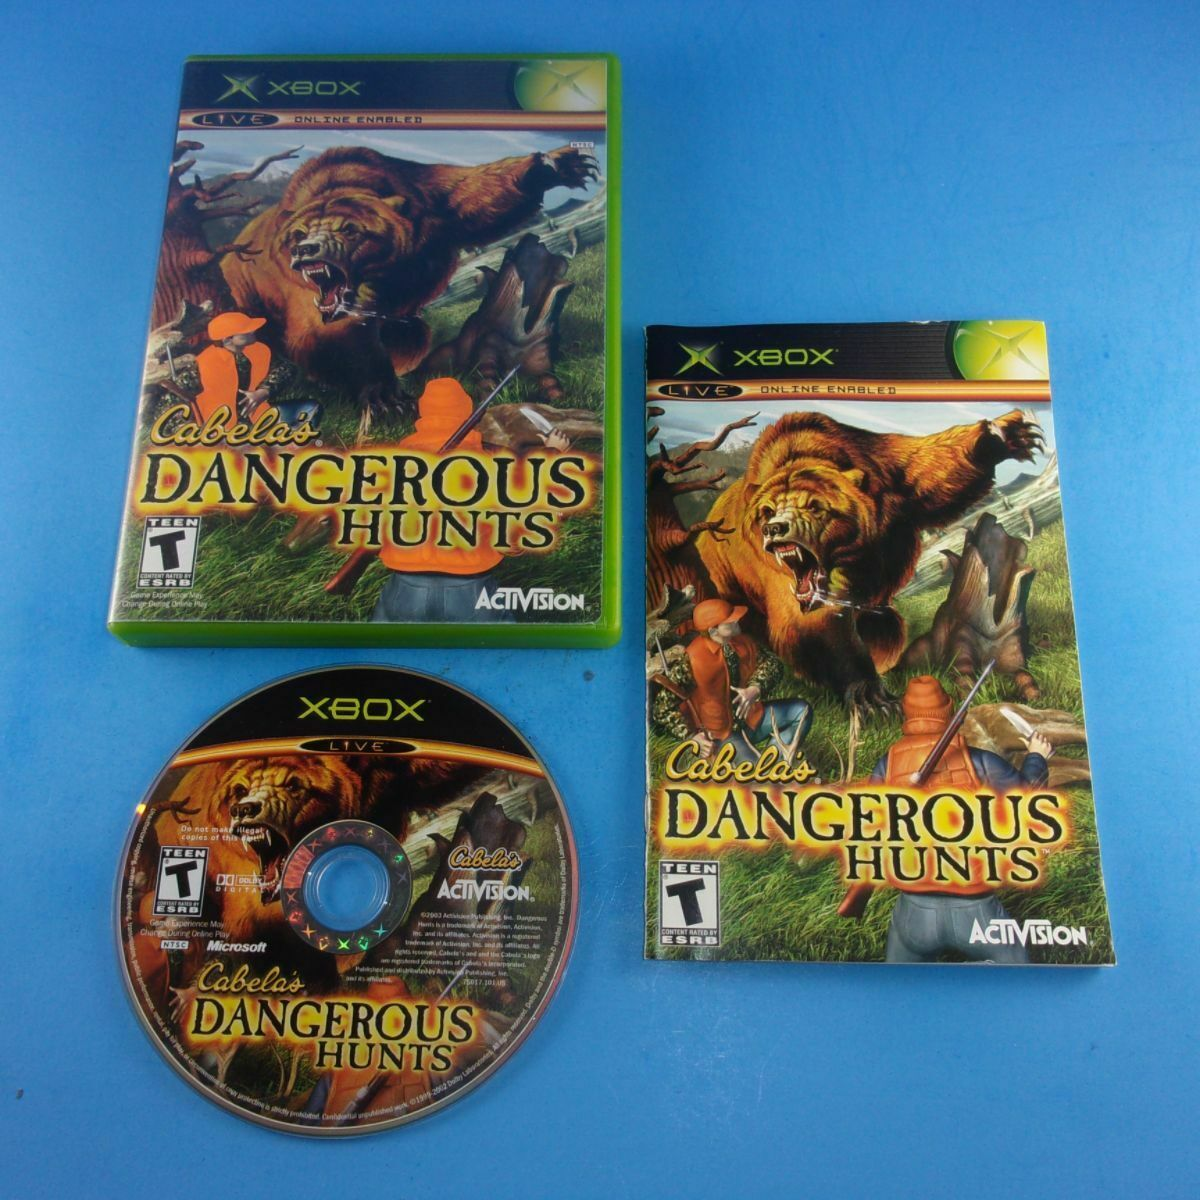 Cabela's Dangerous Hunts - Xbox - Complete In Box - Cleaned/Tested - Free Ship